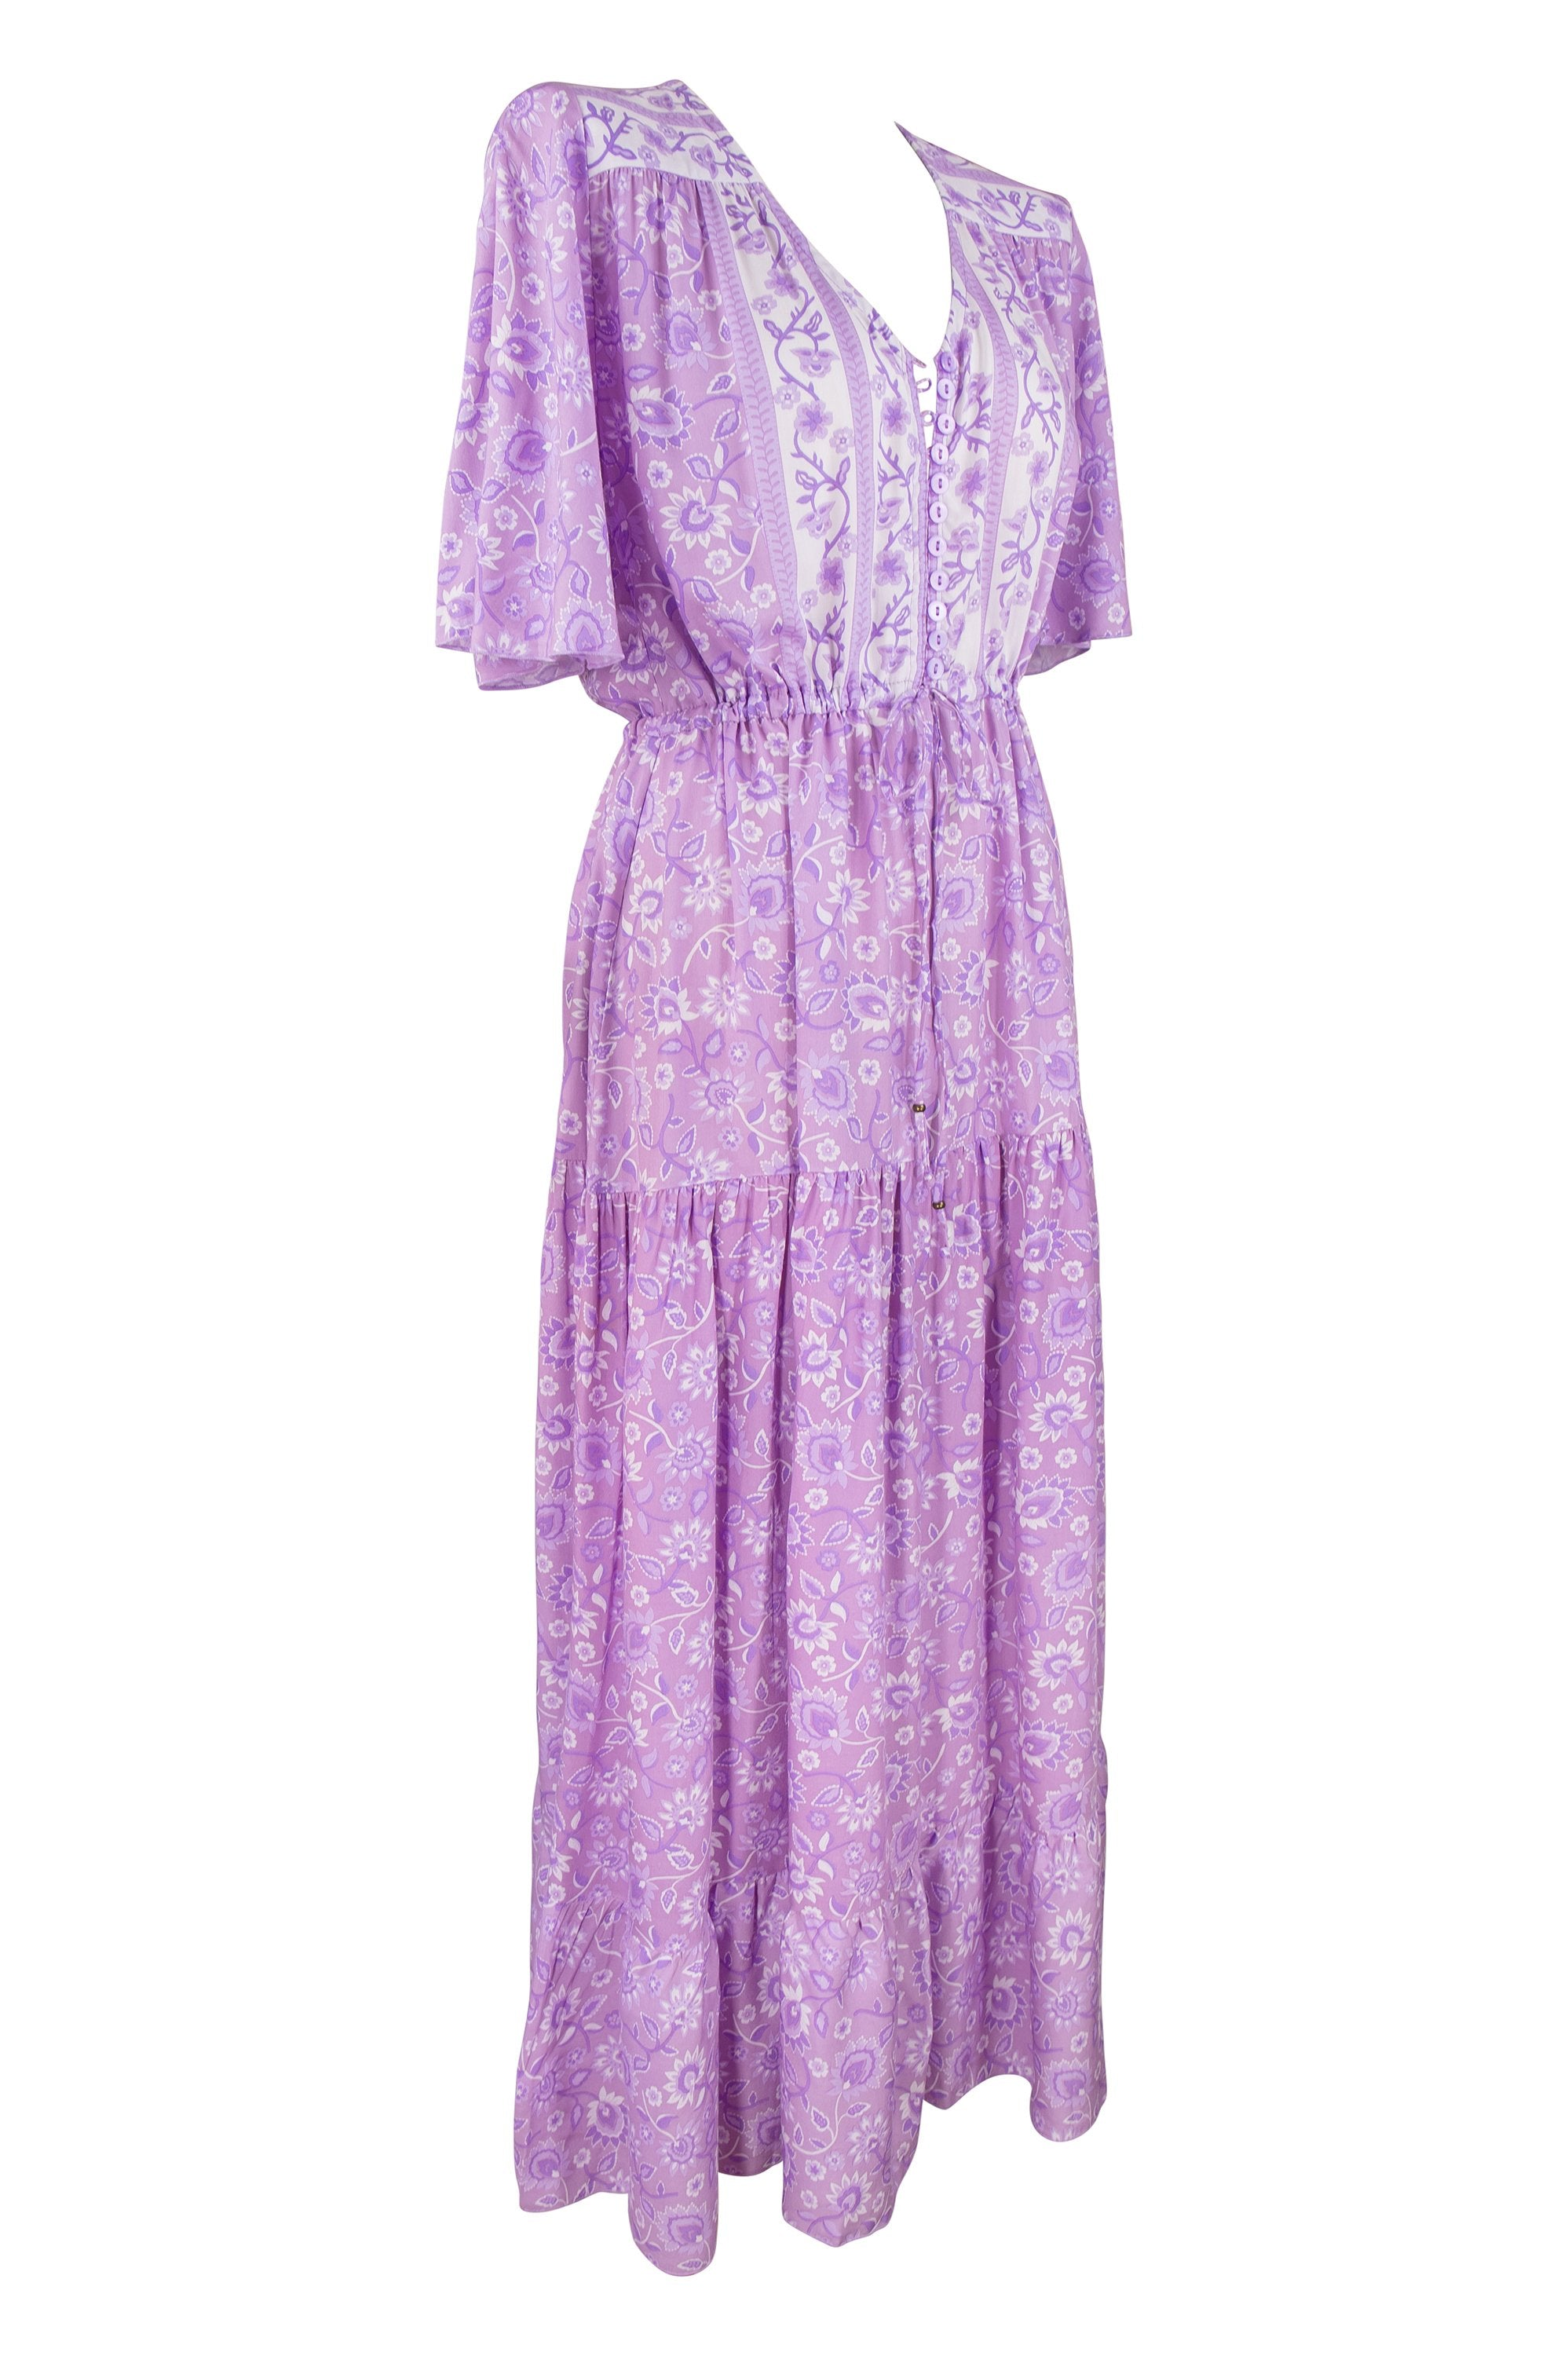 Boho Drifter Maxi Dress 🔮 Lavender Fields - Saffron Road